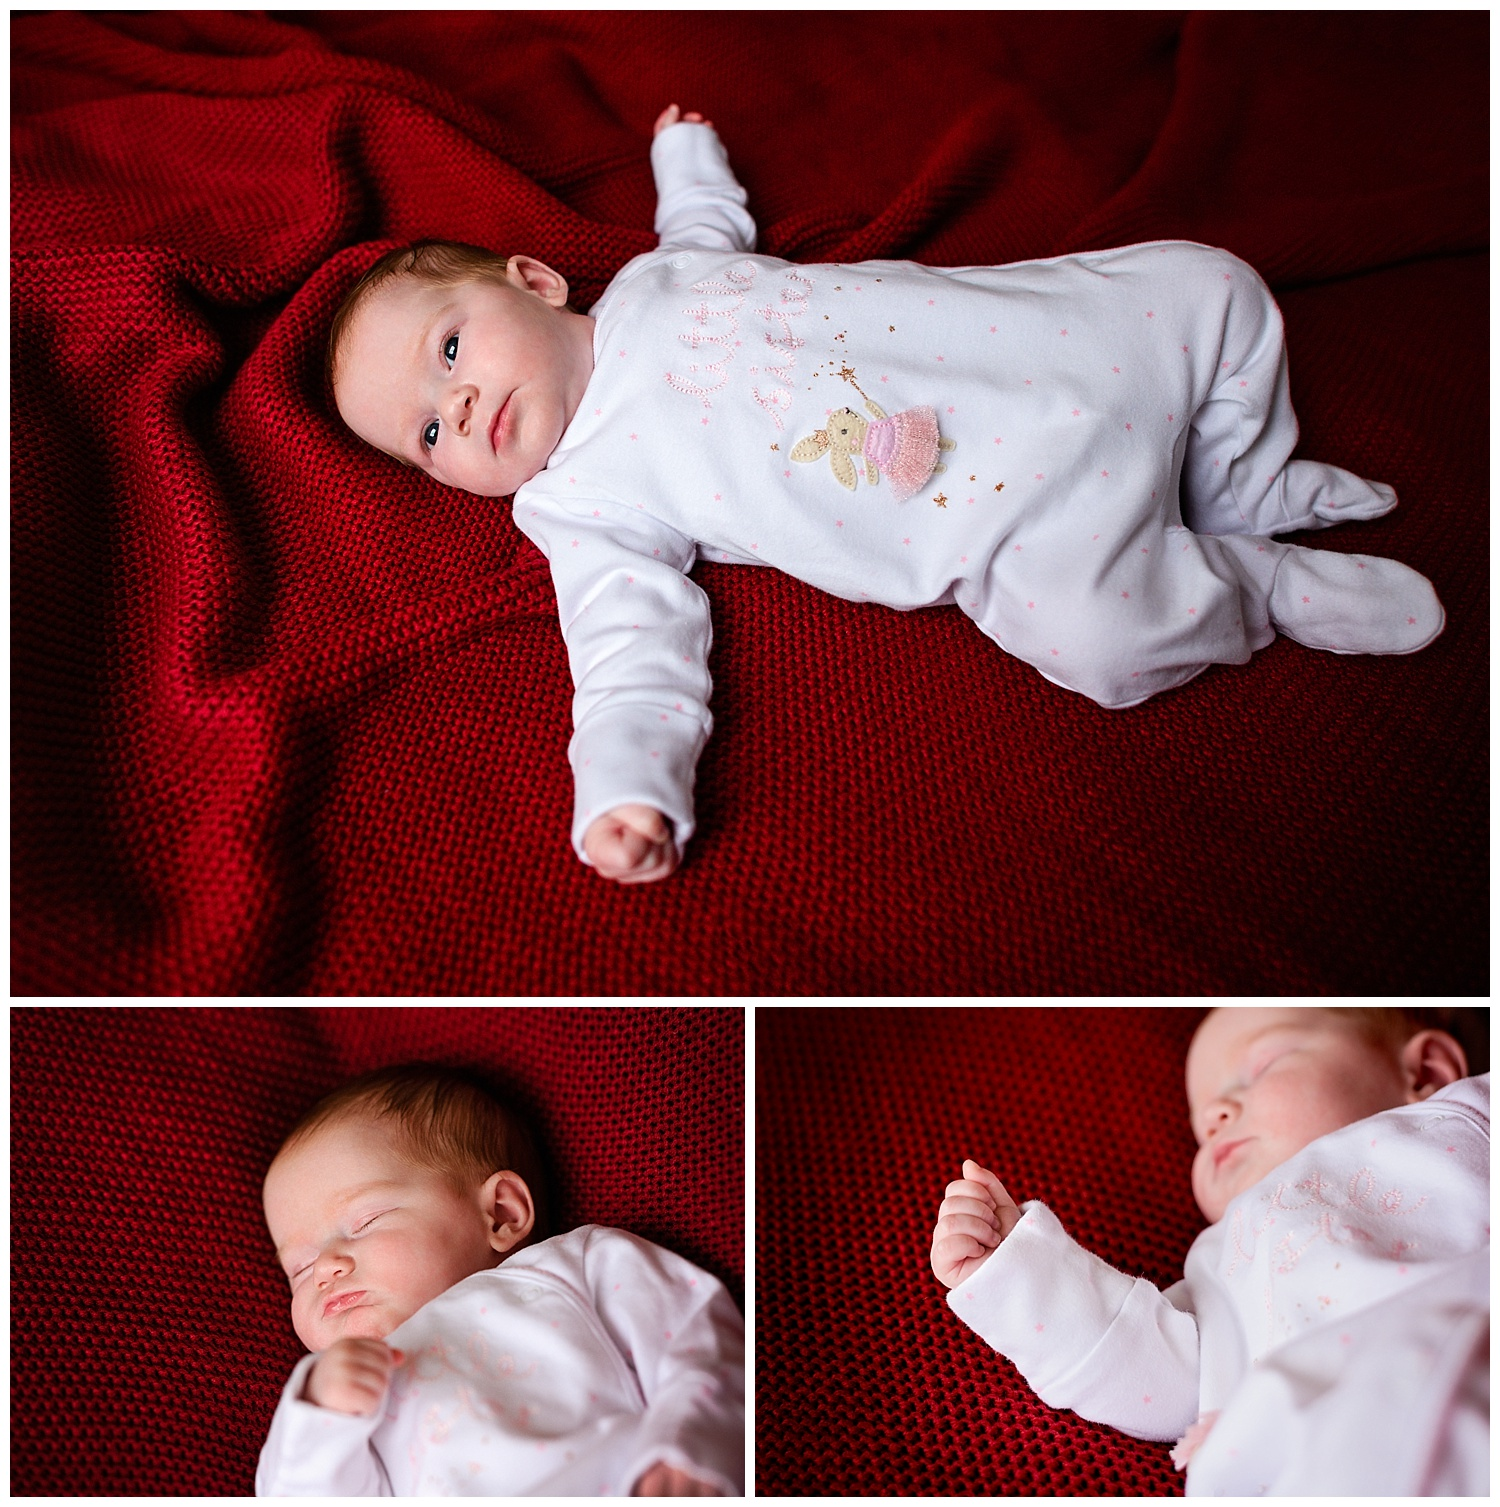 Montage of images from a newborn photo shoot